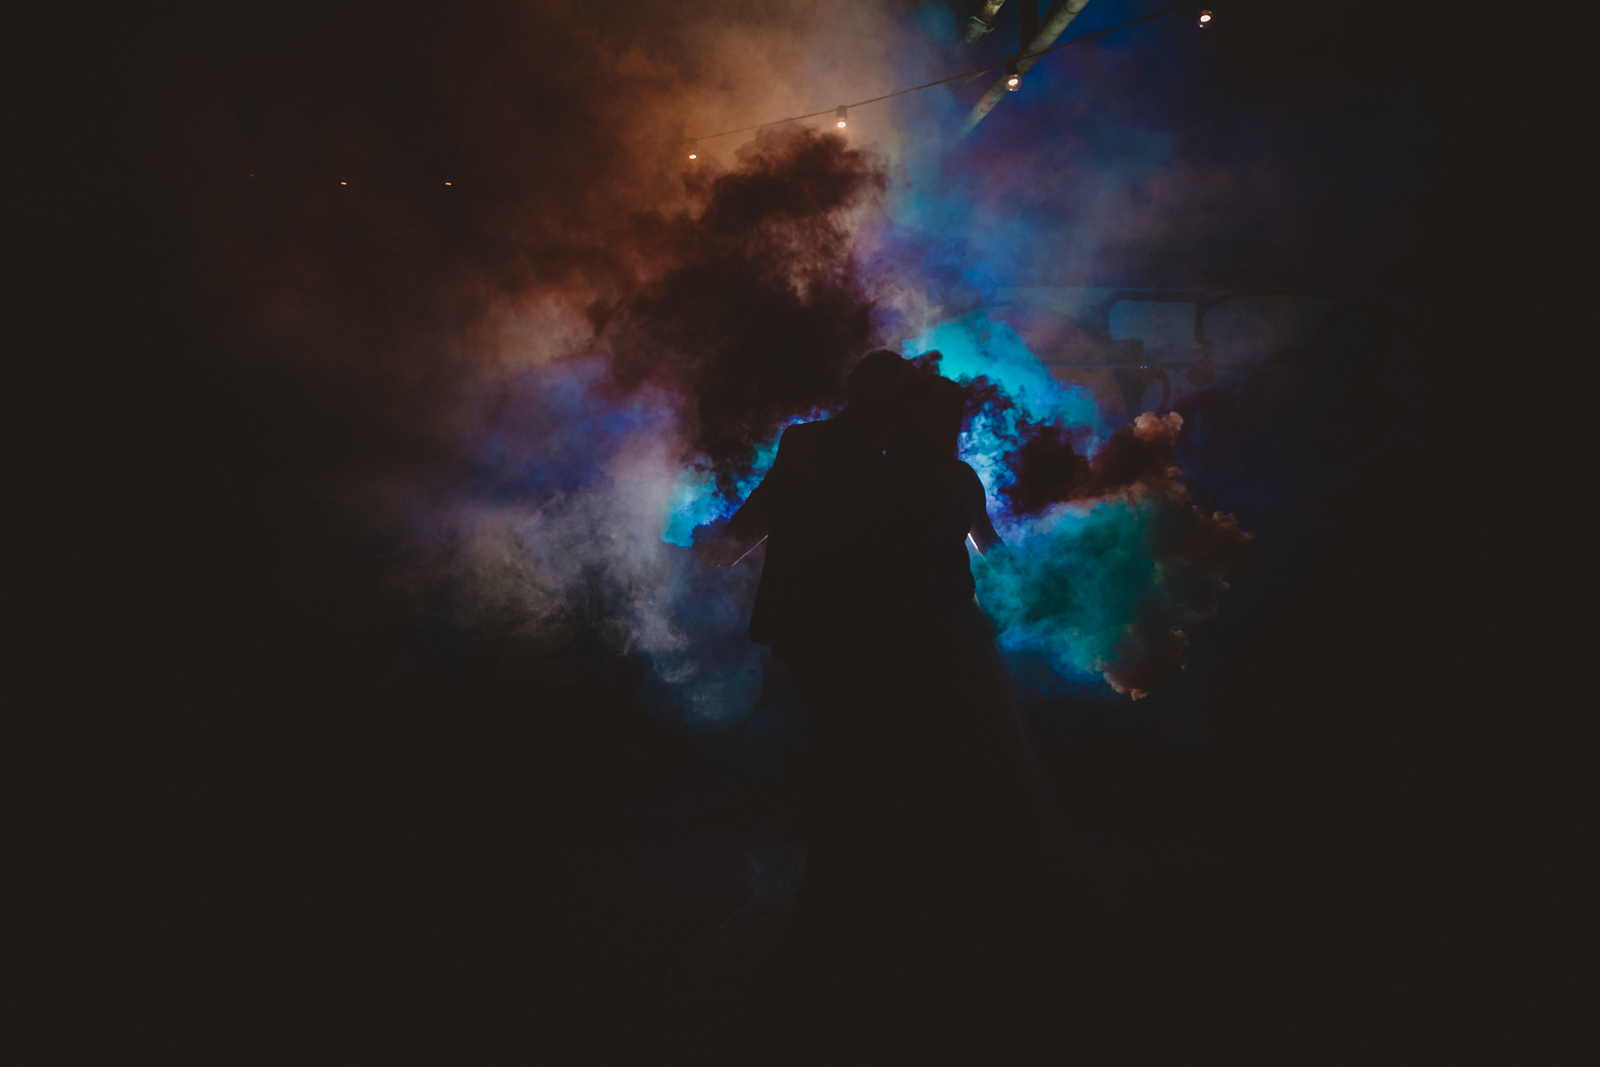 bride and groom kissing on their wedding reception danceflore as they hold smoke grenedes that silloutte the entire venue in blue light through the smoke